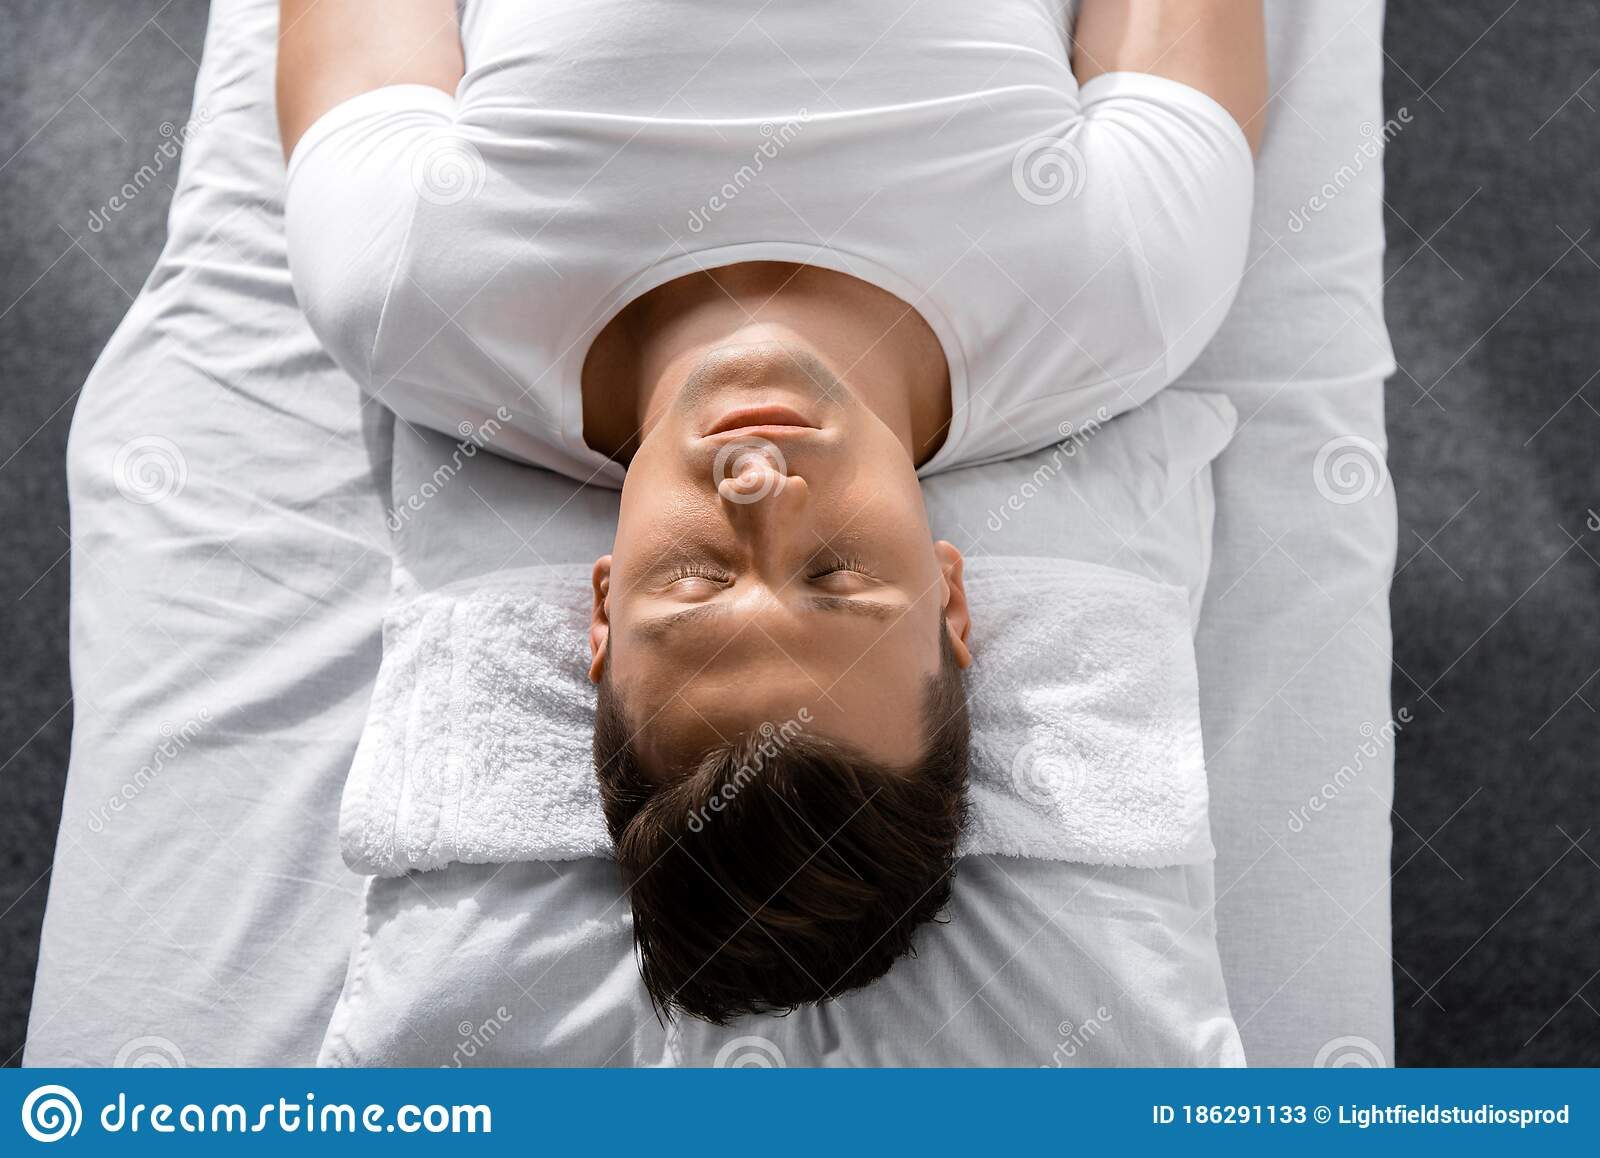 man lying on pillow on massage table with closed eyes stock image image of sleeping sunlight 186291133